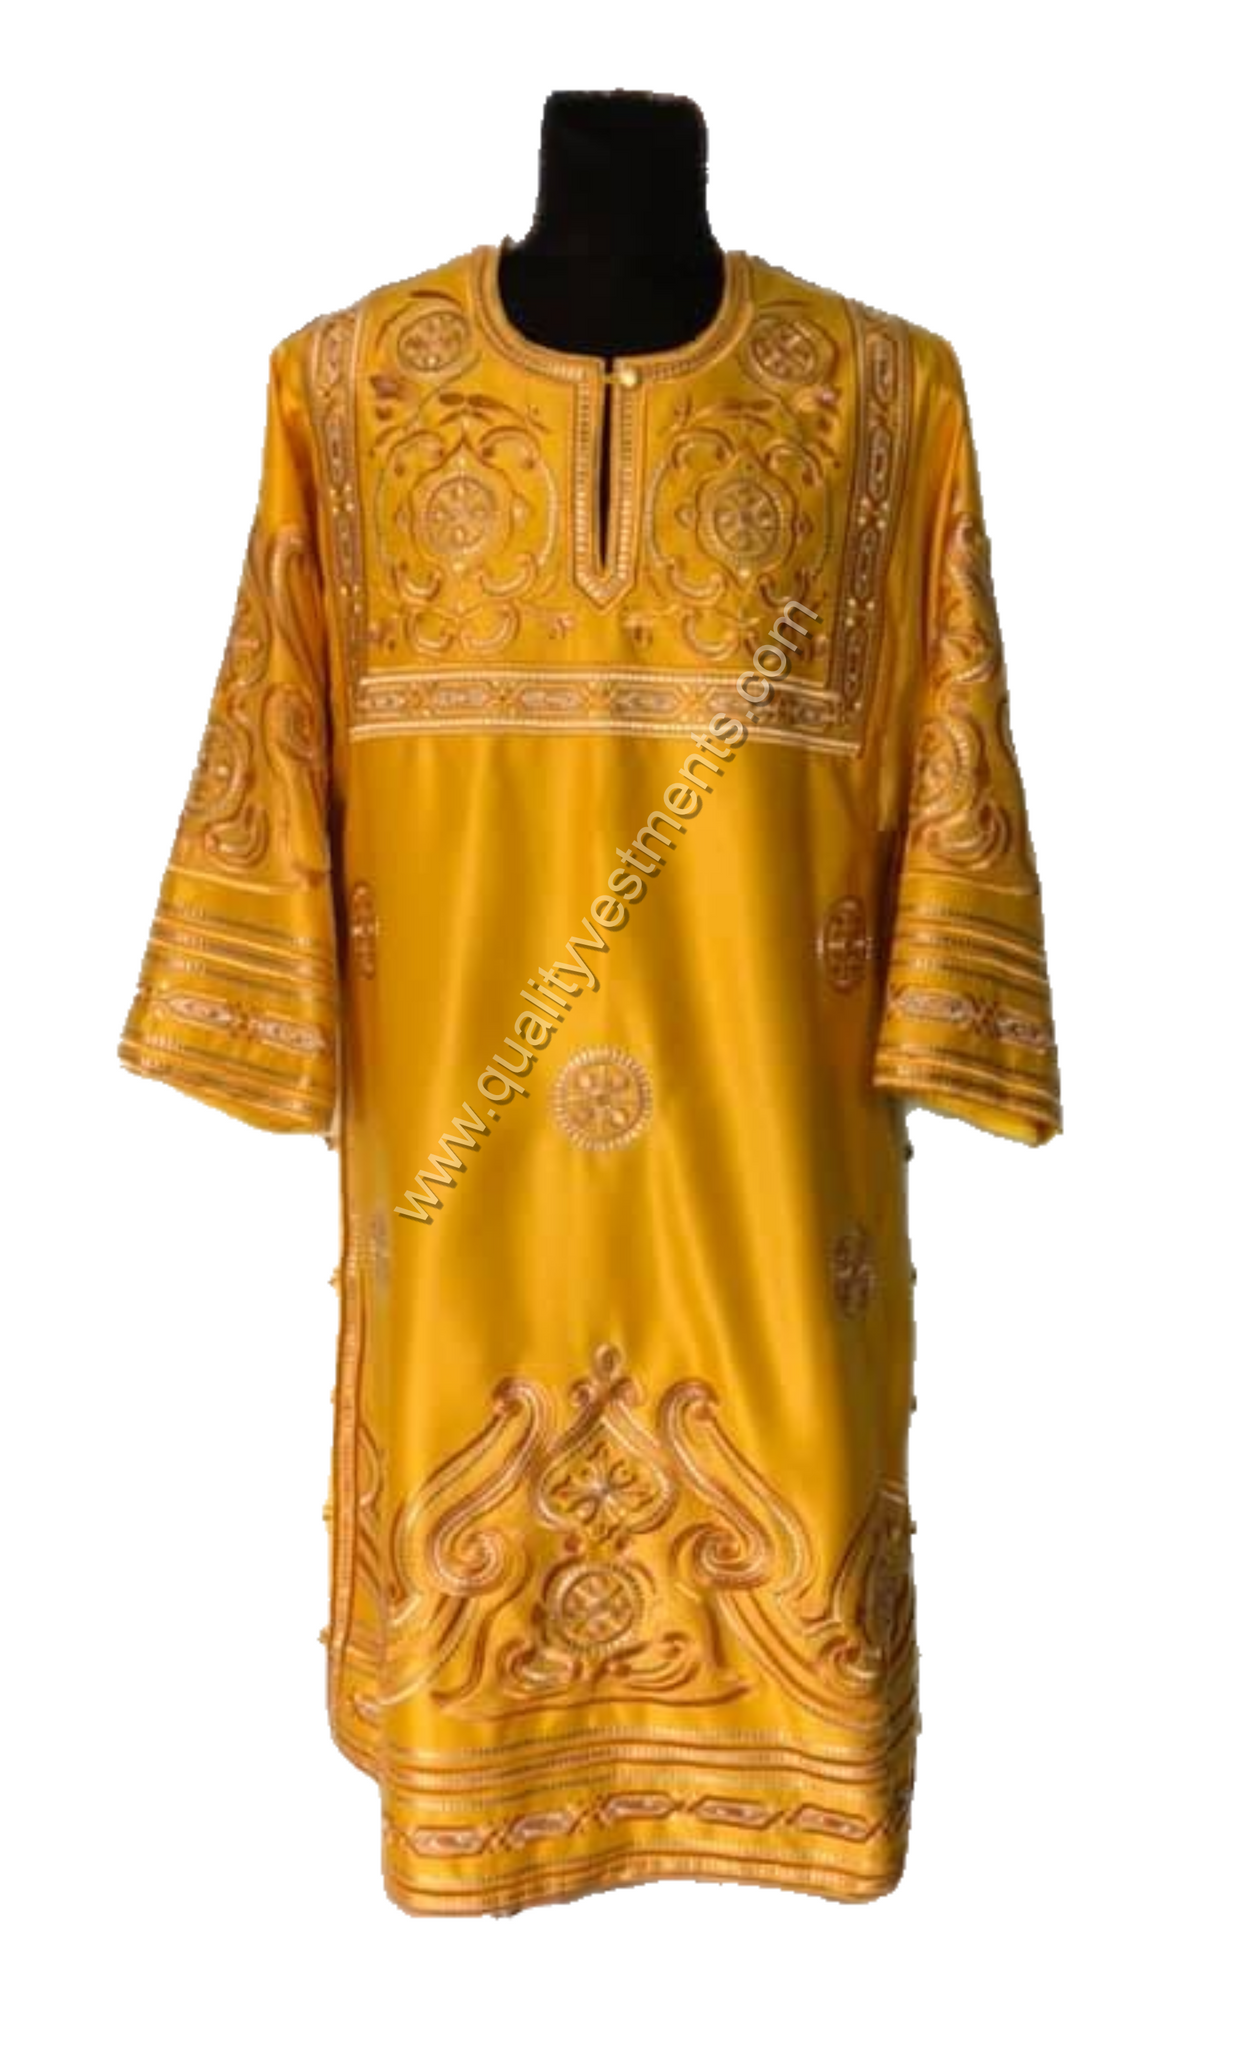 Gold Deacon's Embroidered vestments LIGHTWEIGHT TO ORDER